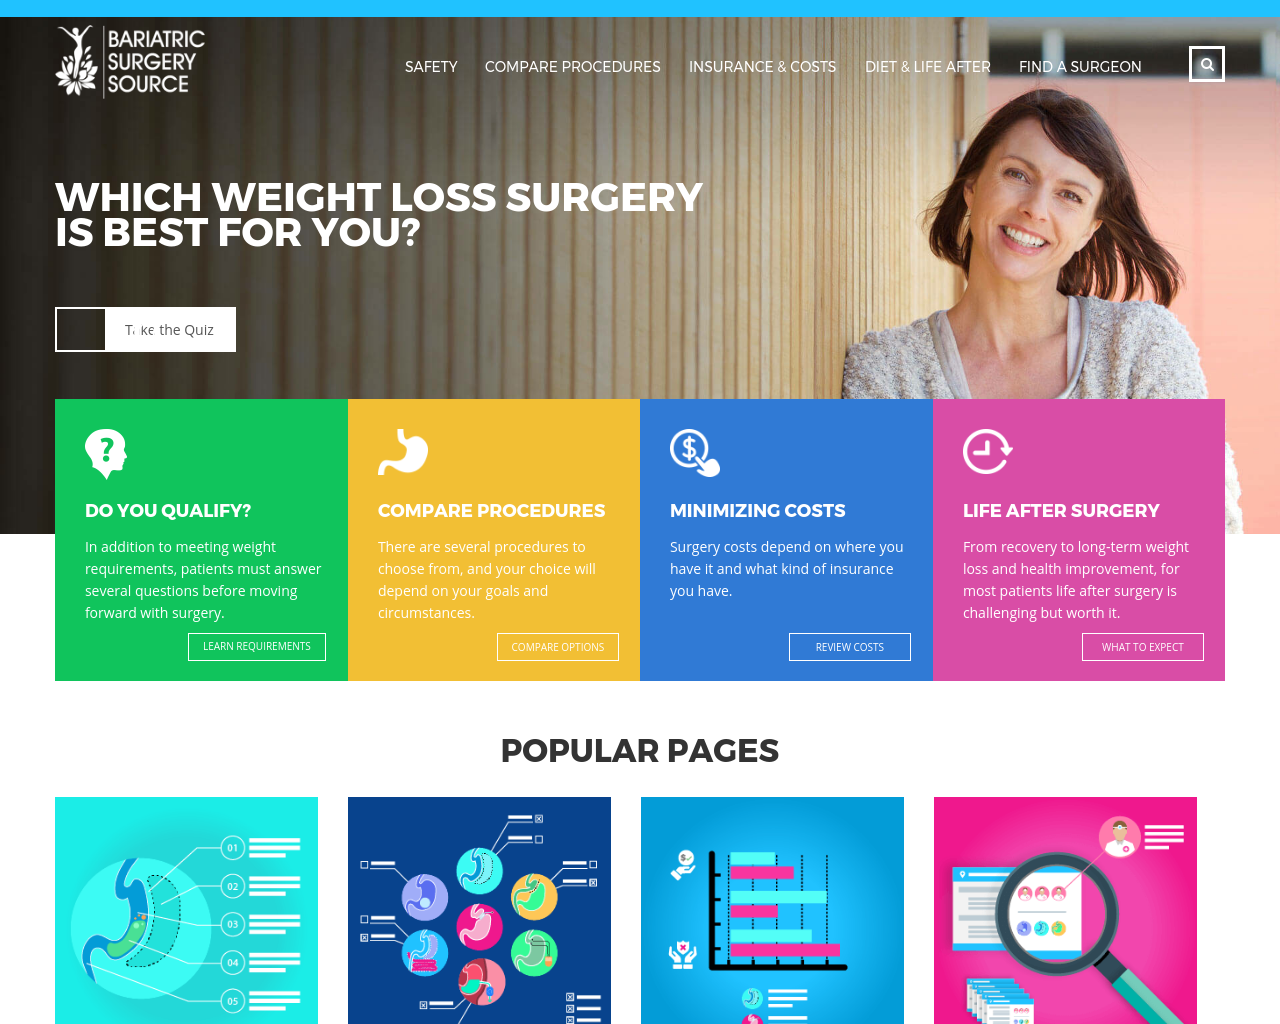 Bariatric-Surgery-Source-Advertising-Reviews-Pricing